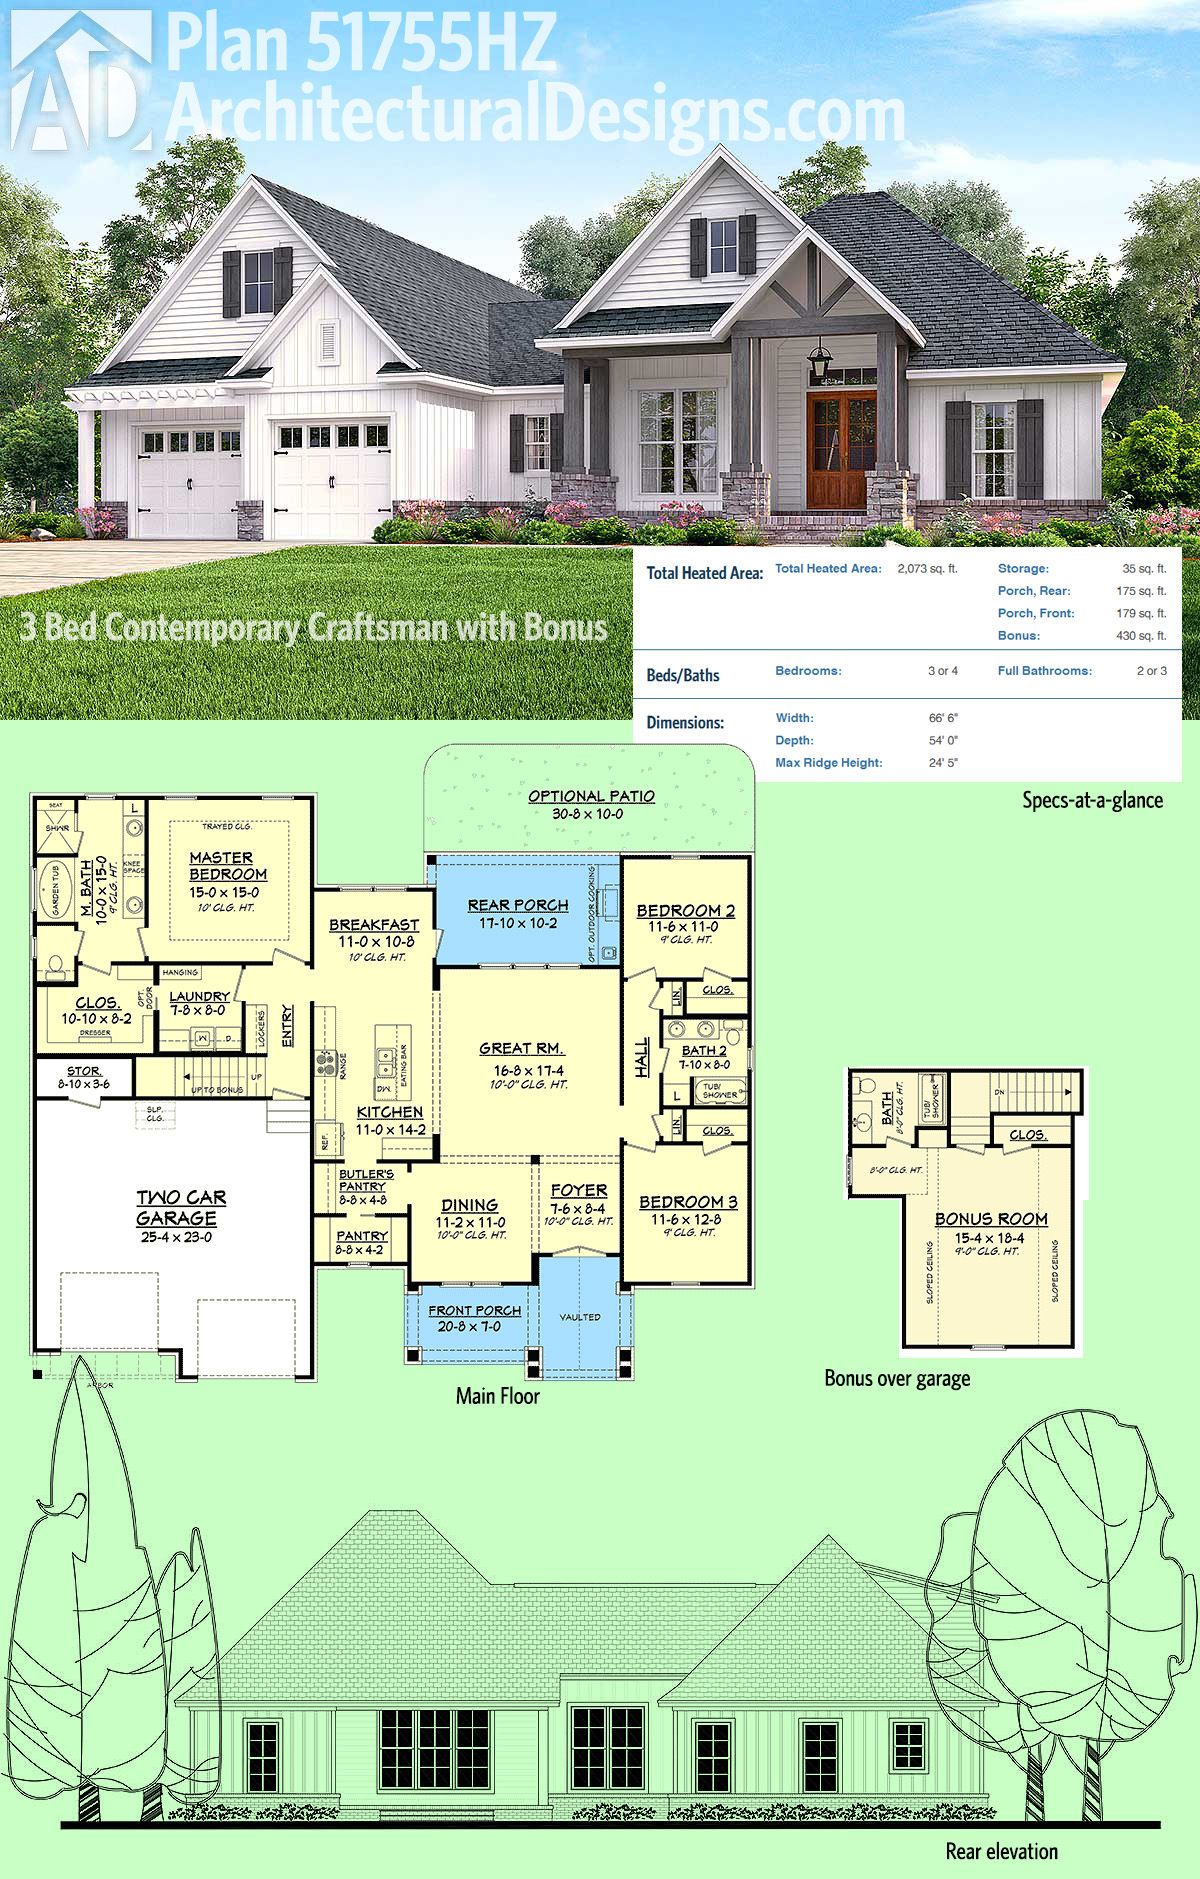 Plan 51755hz 3 bed contemporary craftsman with bonus over for Room over garage plans